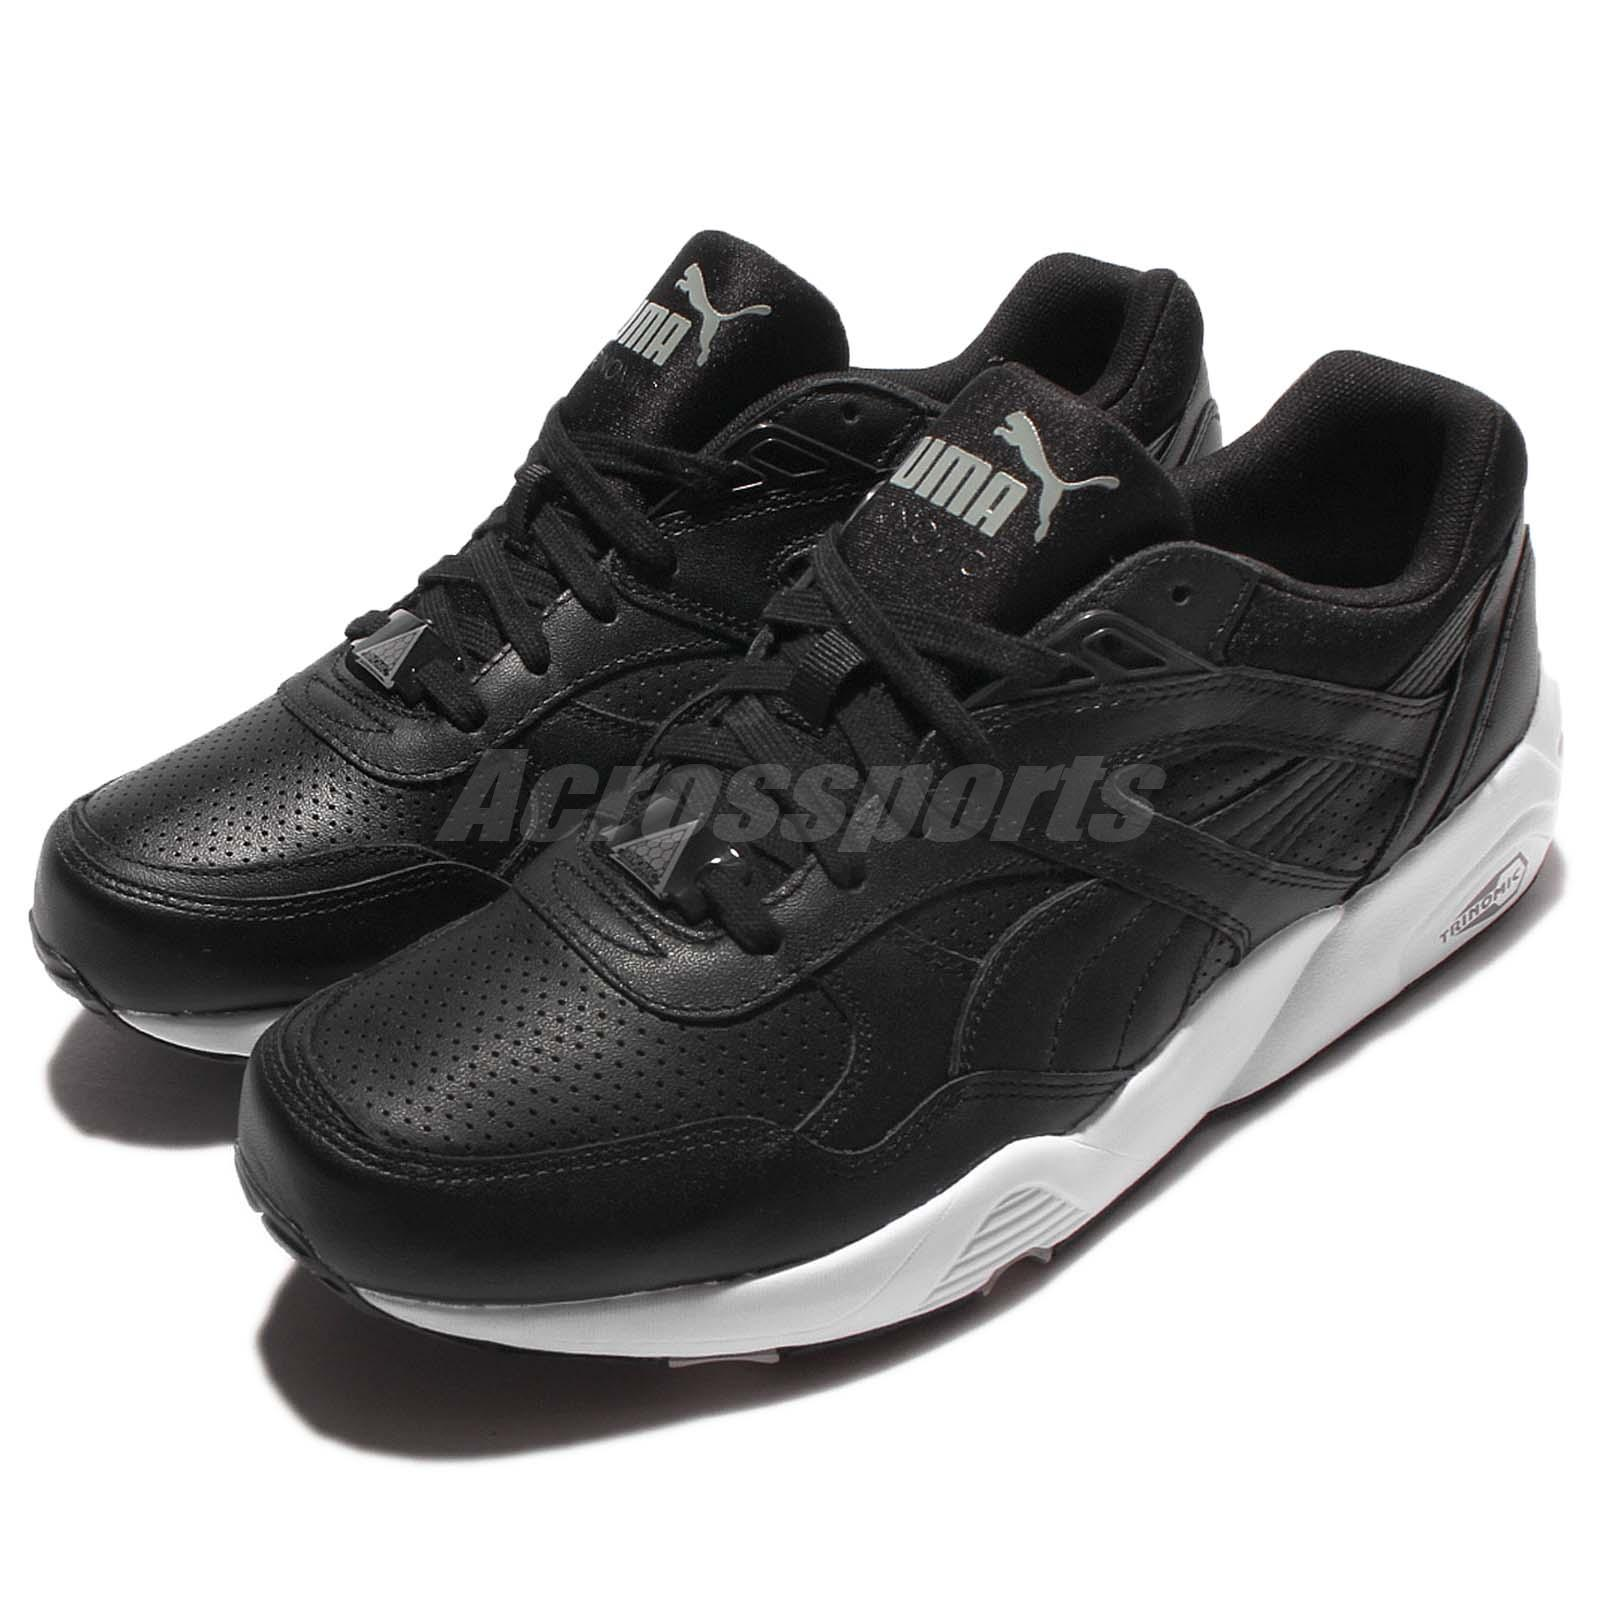 3ffe79af7d99 Details about Puma R698 Core Leather Trinomic Black White Men Running Shoes  Sneakers 360601-02